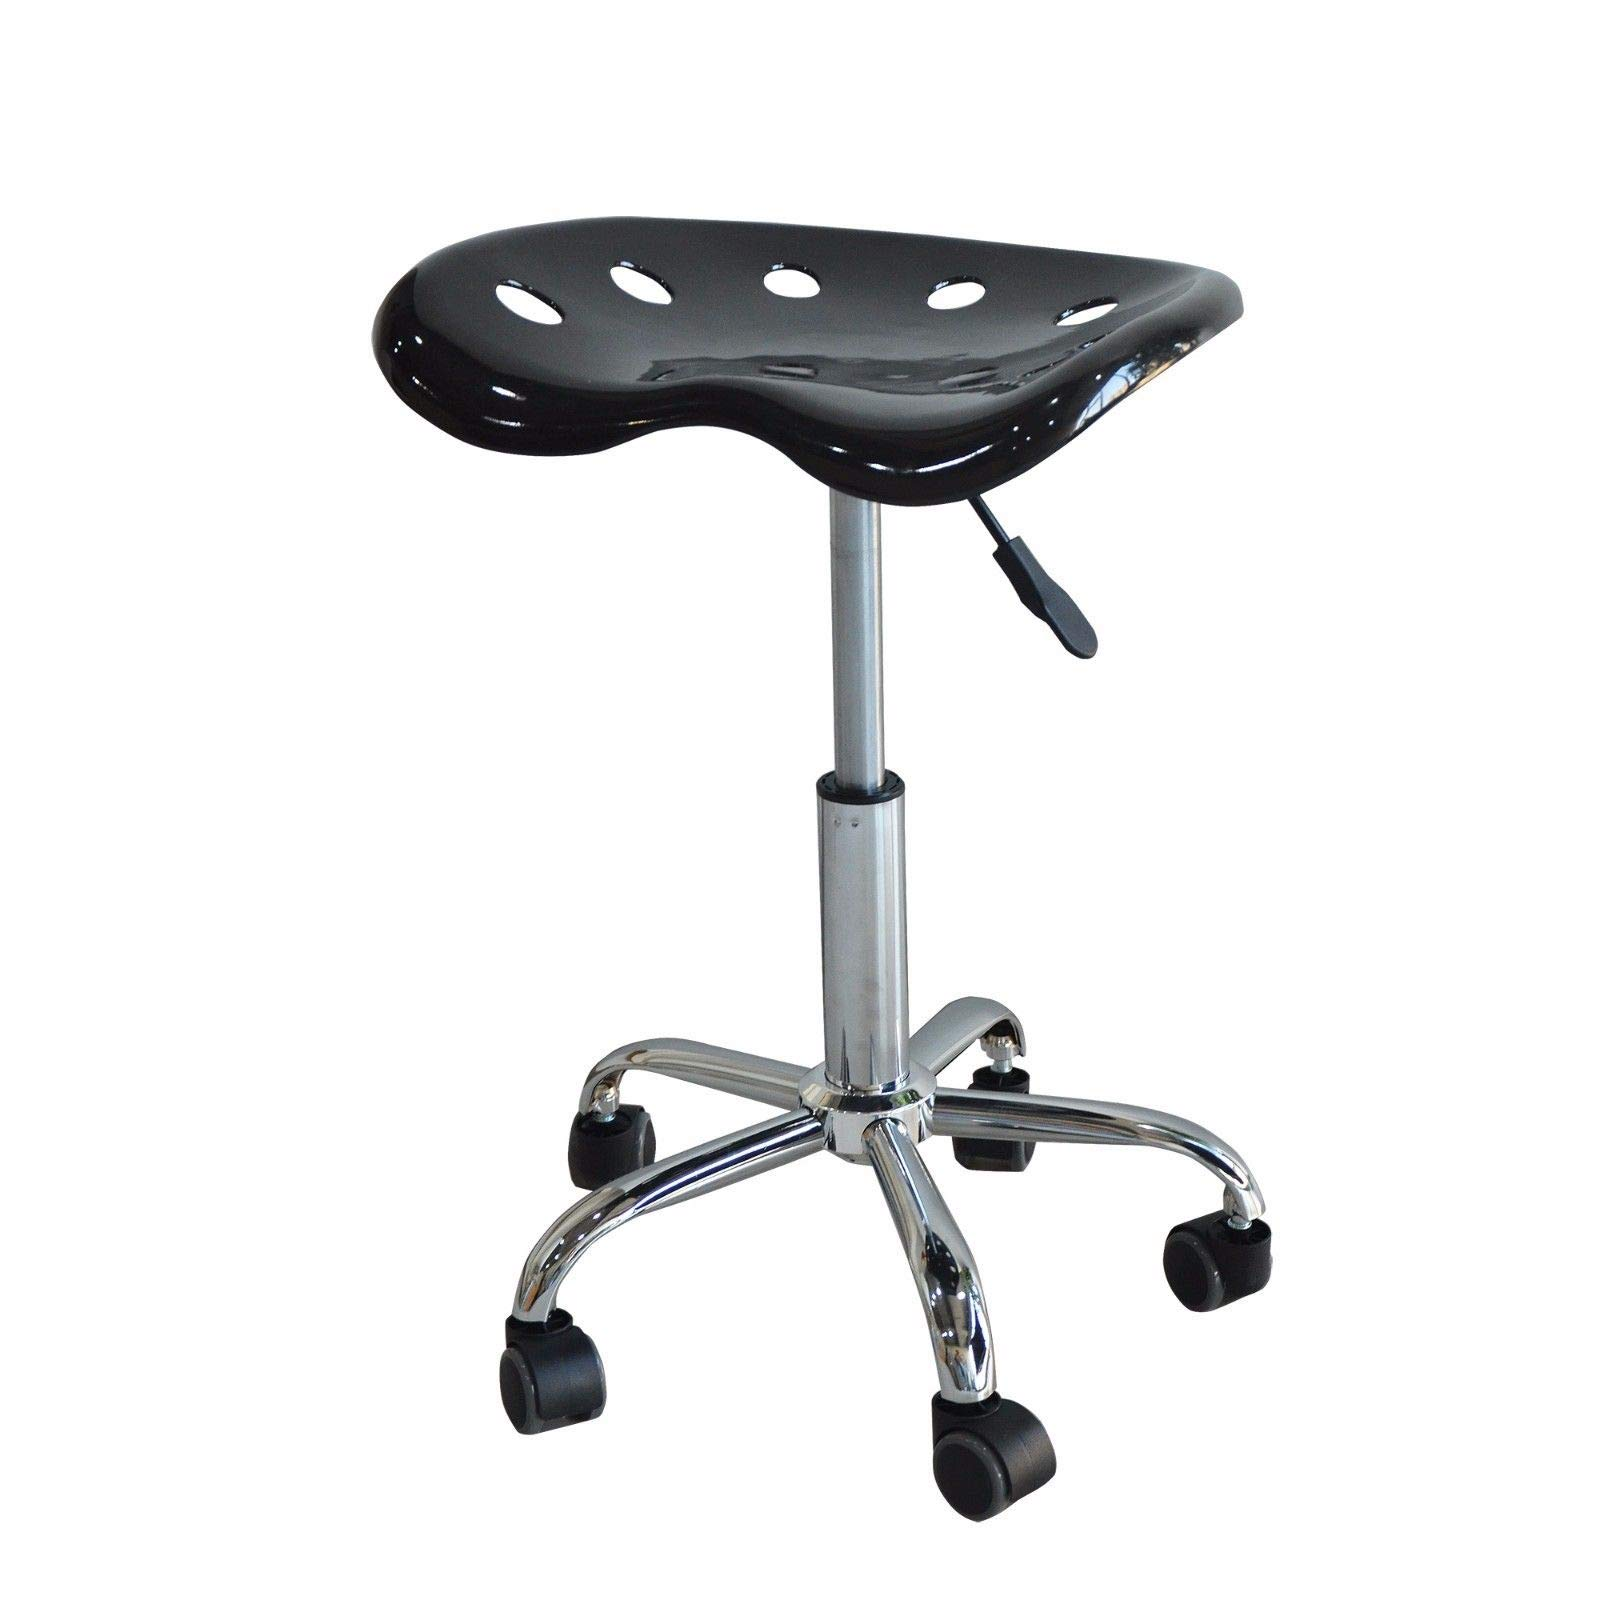 ABS Tractor Seat Counter Bar Stool- Adjustable Height Swivel Shop Chair